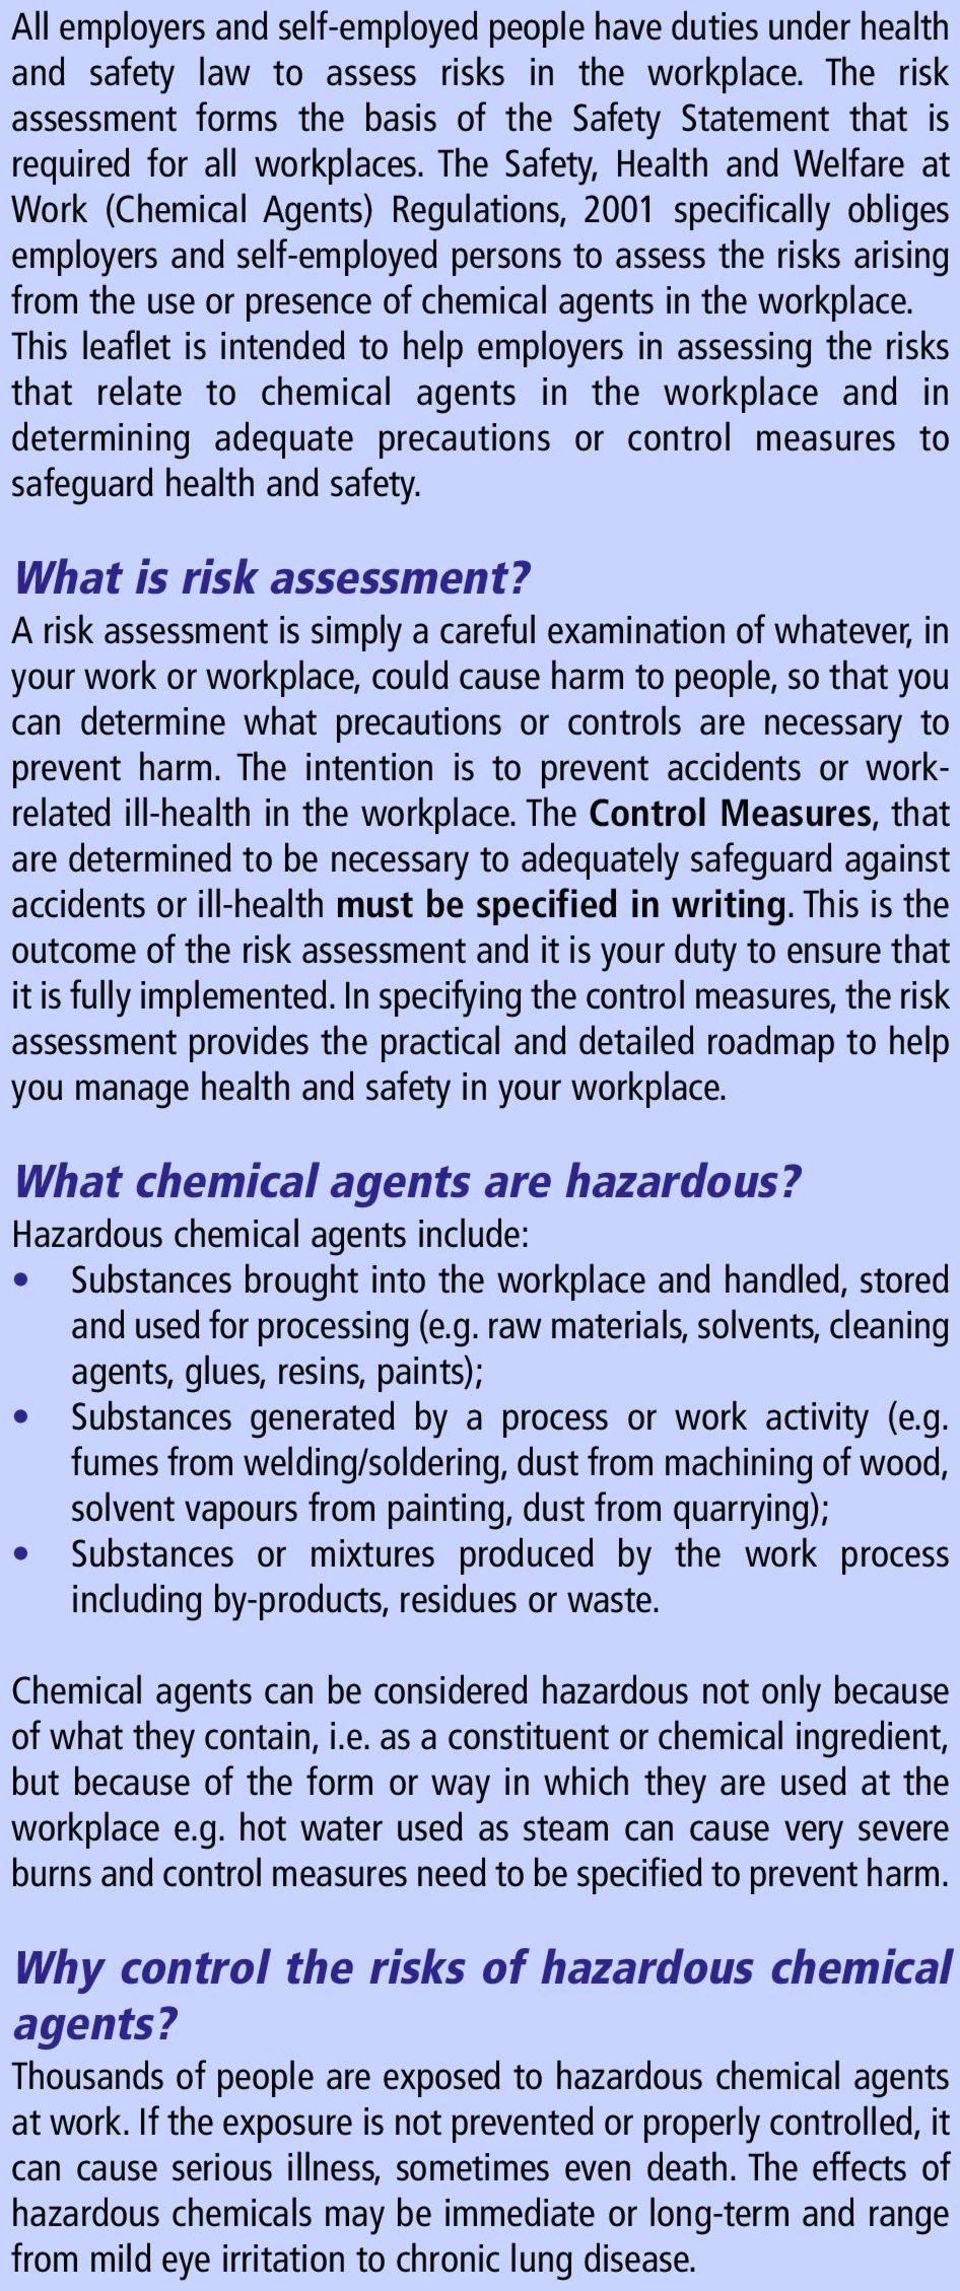 The Safety, Health and Welfare at Work (Chemical Agents) Regulations, 2001 specifically obliges employers and self-employed persons to assess the risks arising from the use or presence of chemical